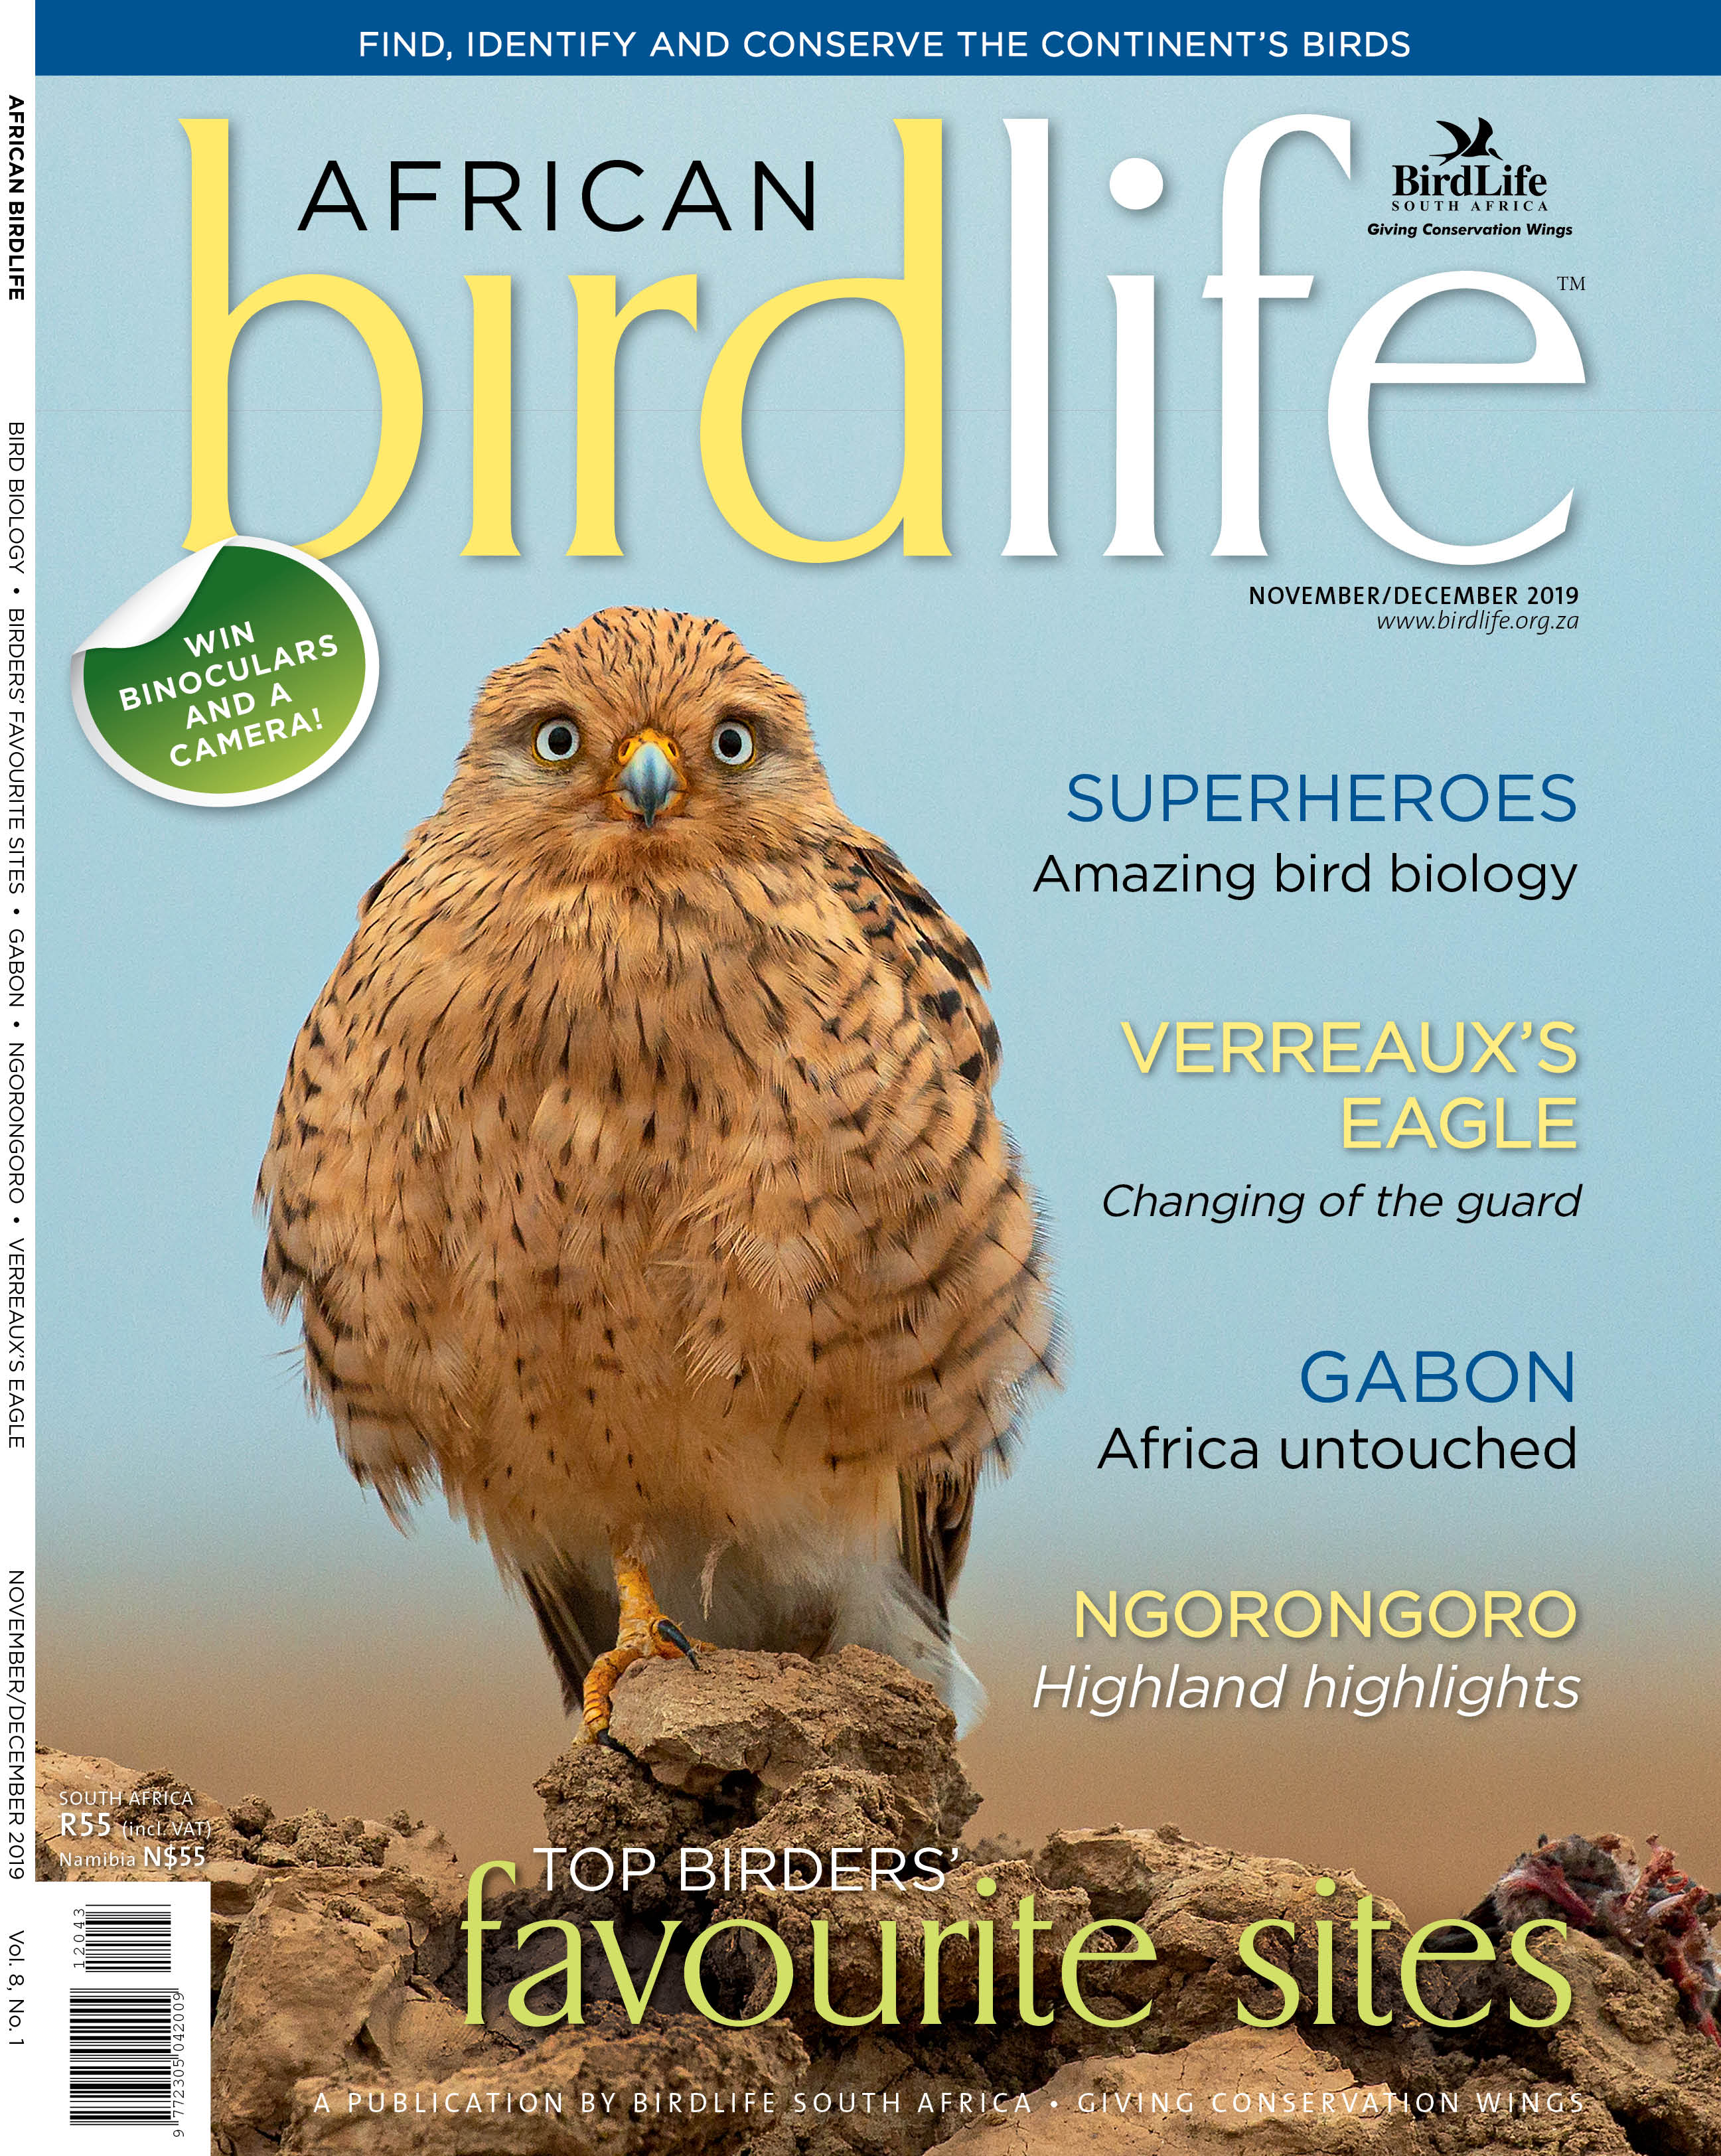 African Birdlife Nov / Dec 2019